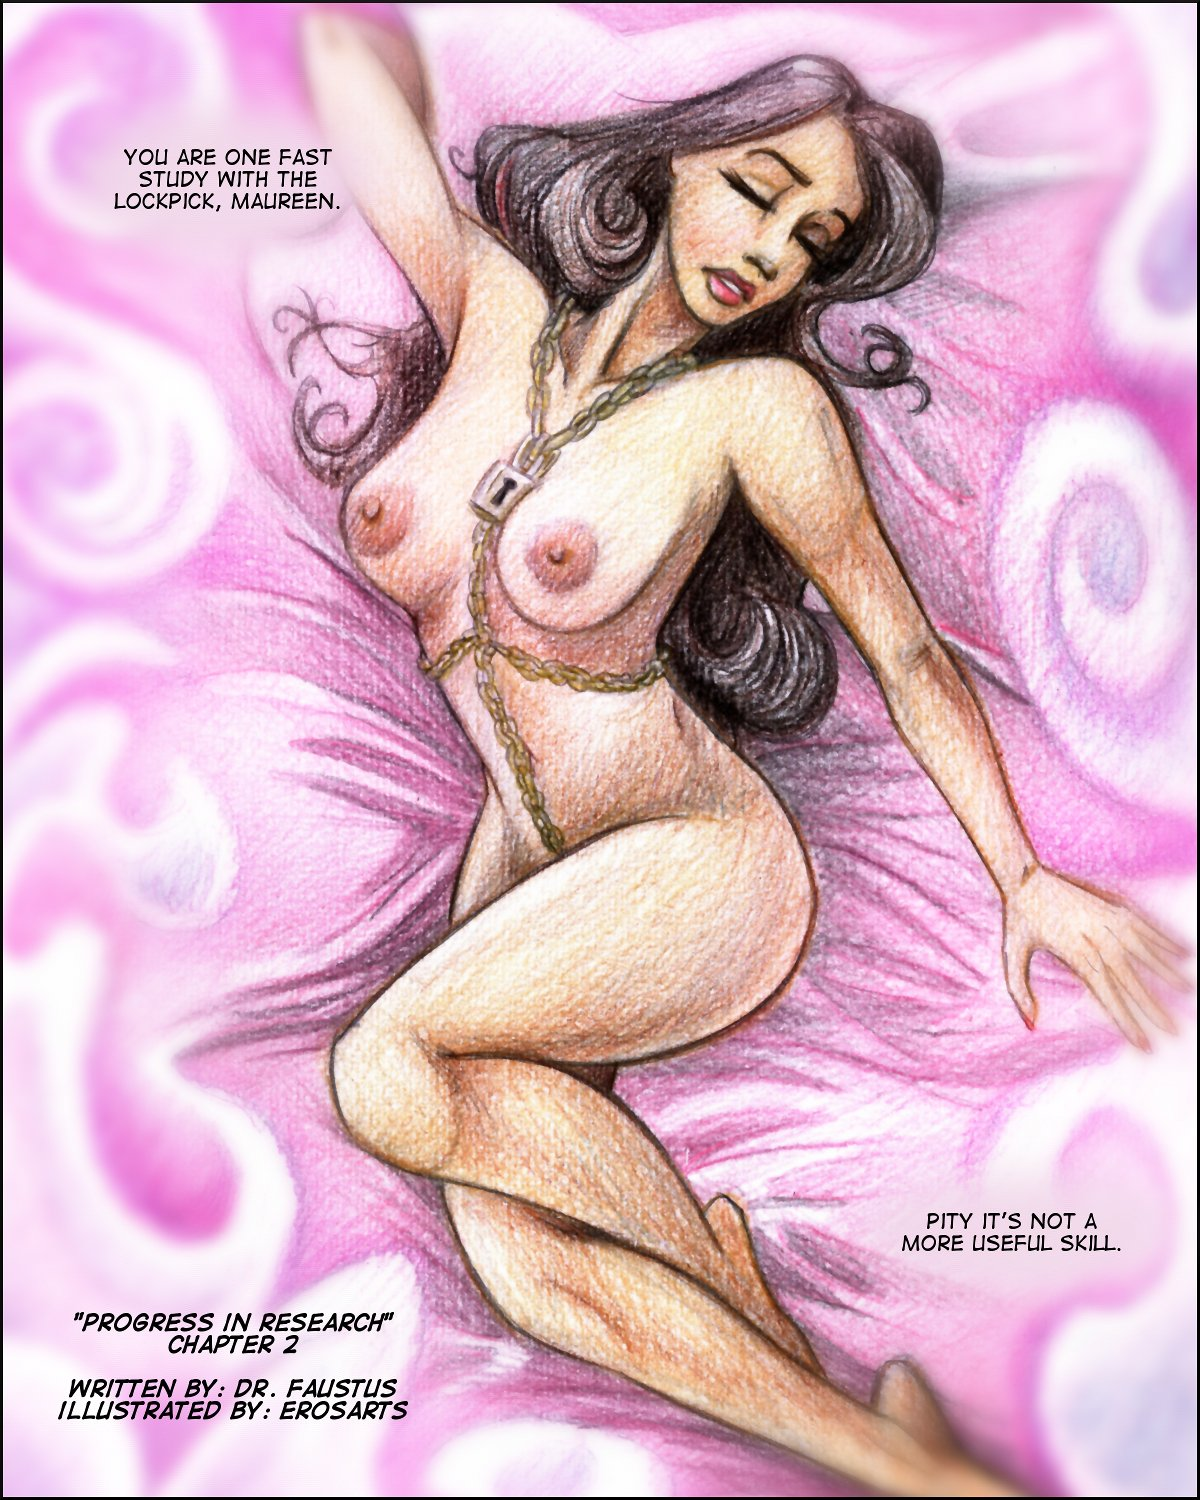 A pin-up of Moira Weir constructed in Aloysius's mind's eye.